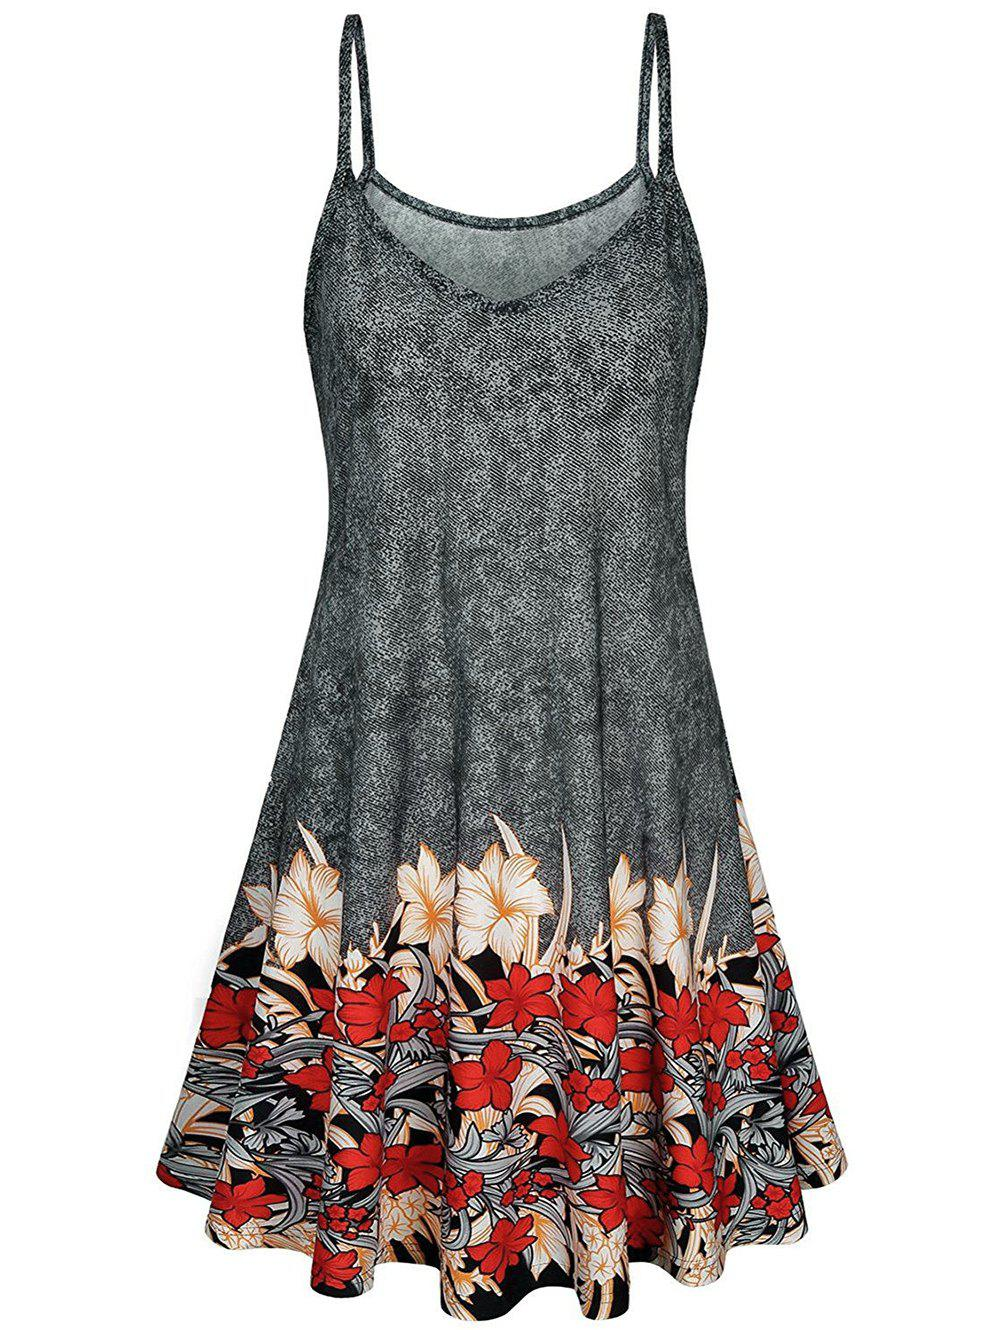 Floral Print Cami A Line Dress - multicolor 2XL